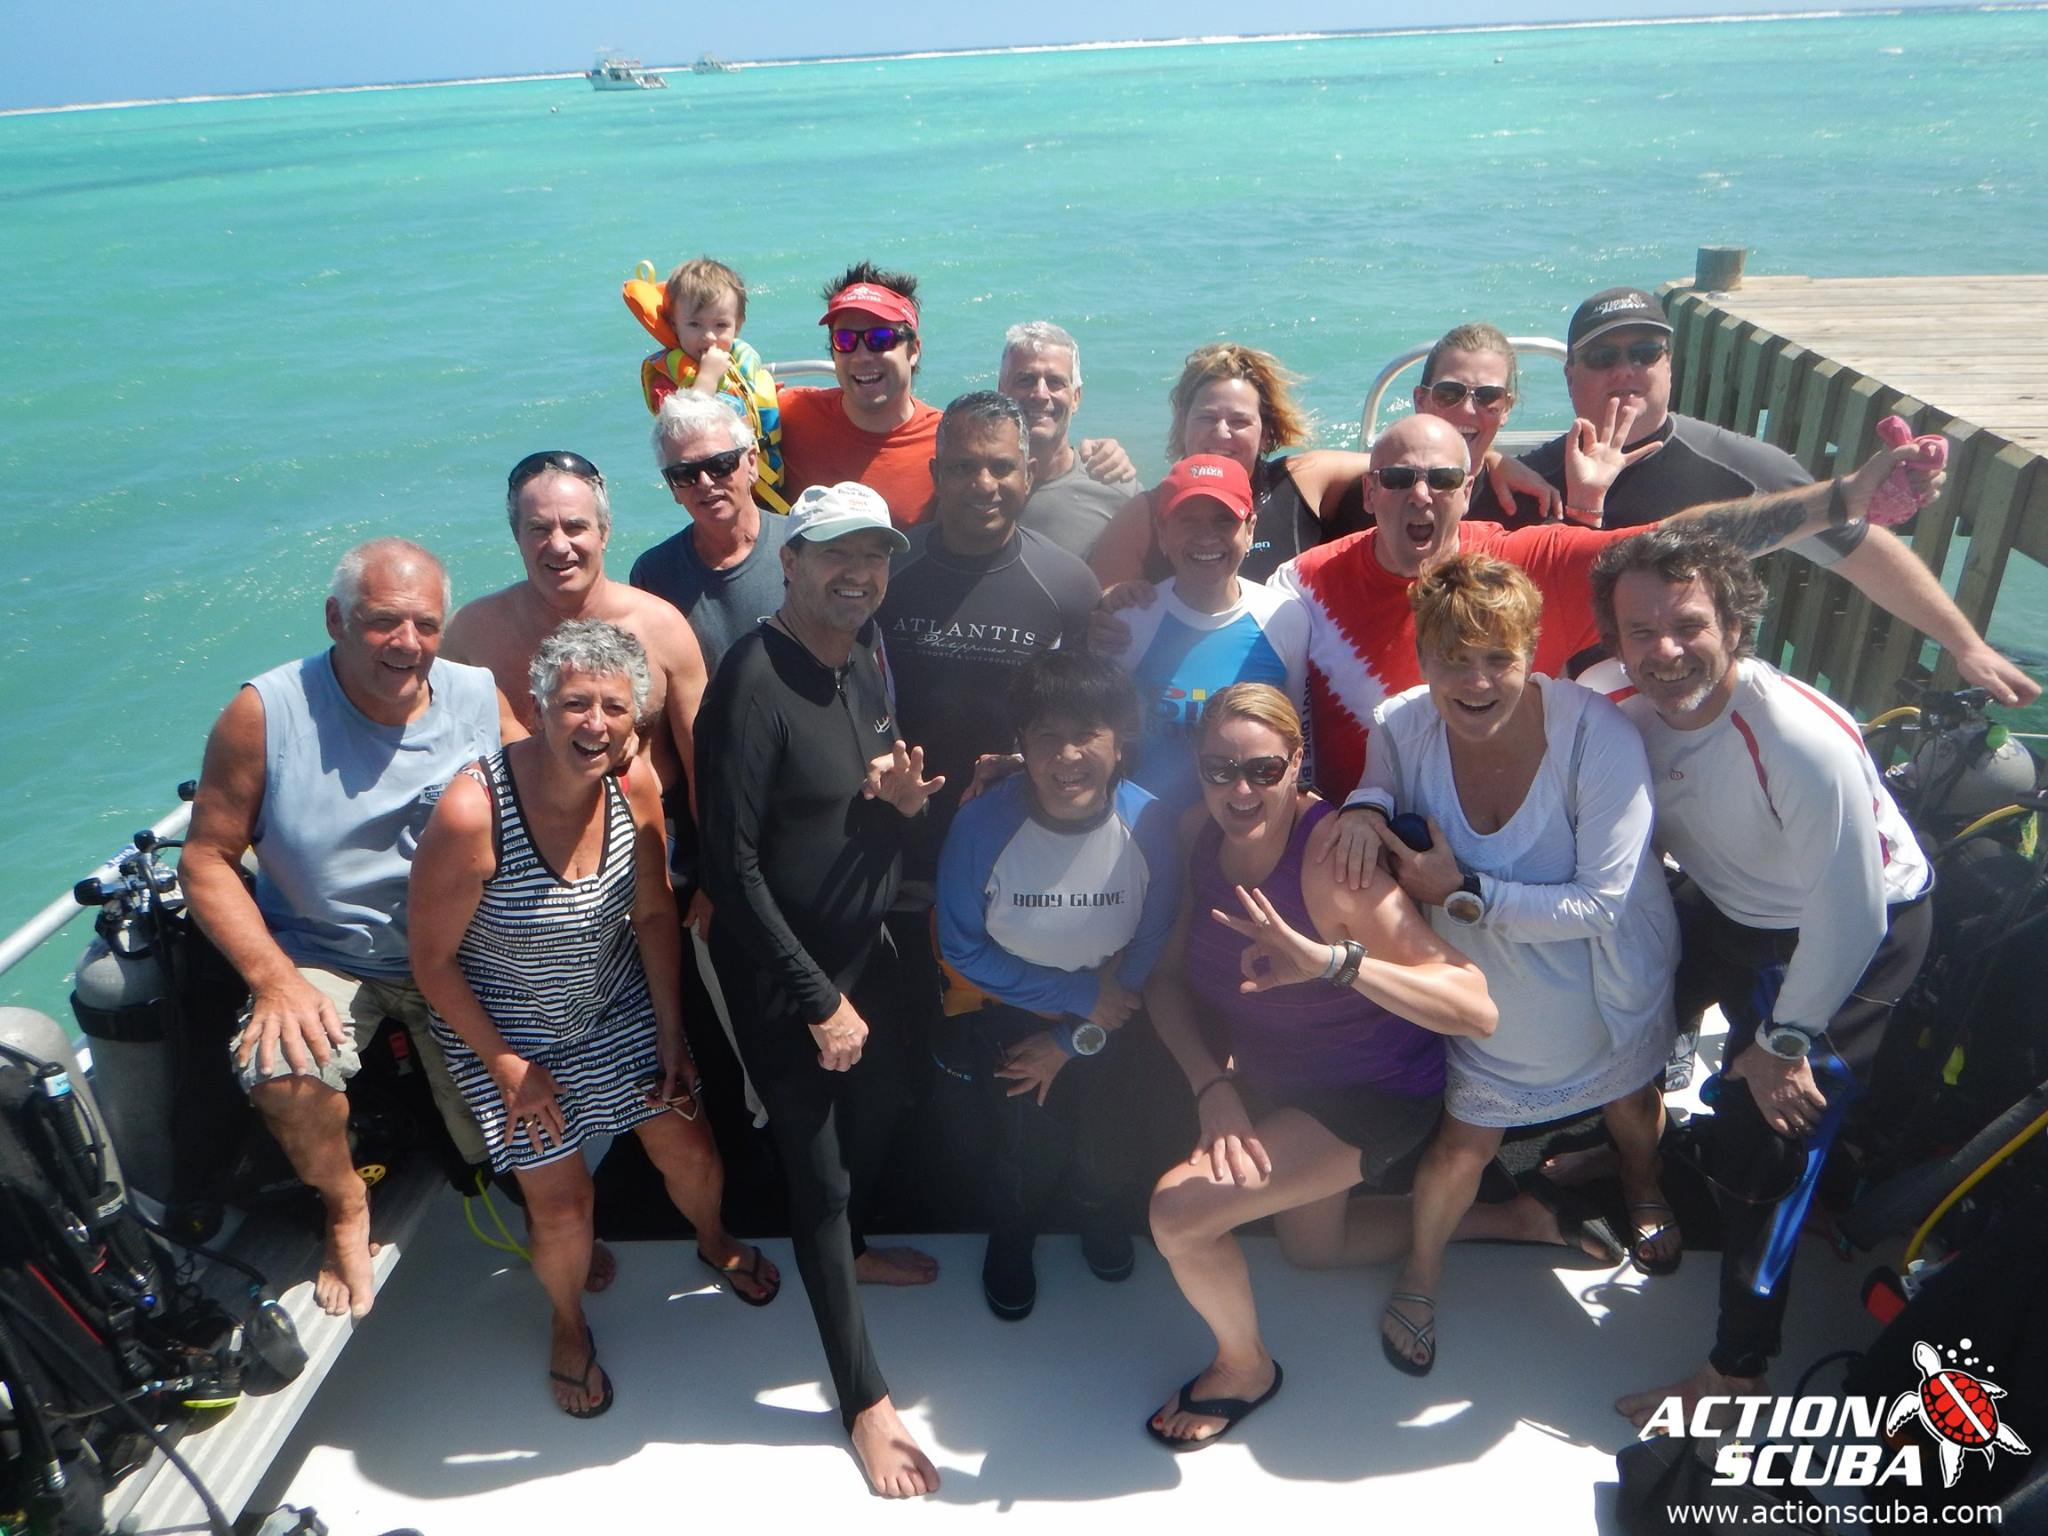 Scuba diving trip to Little Cayman with Action Scuba Montreal